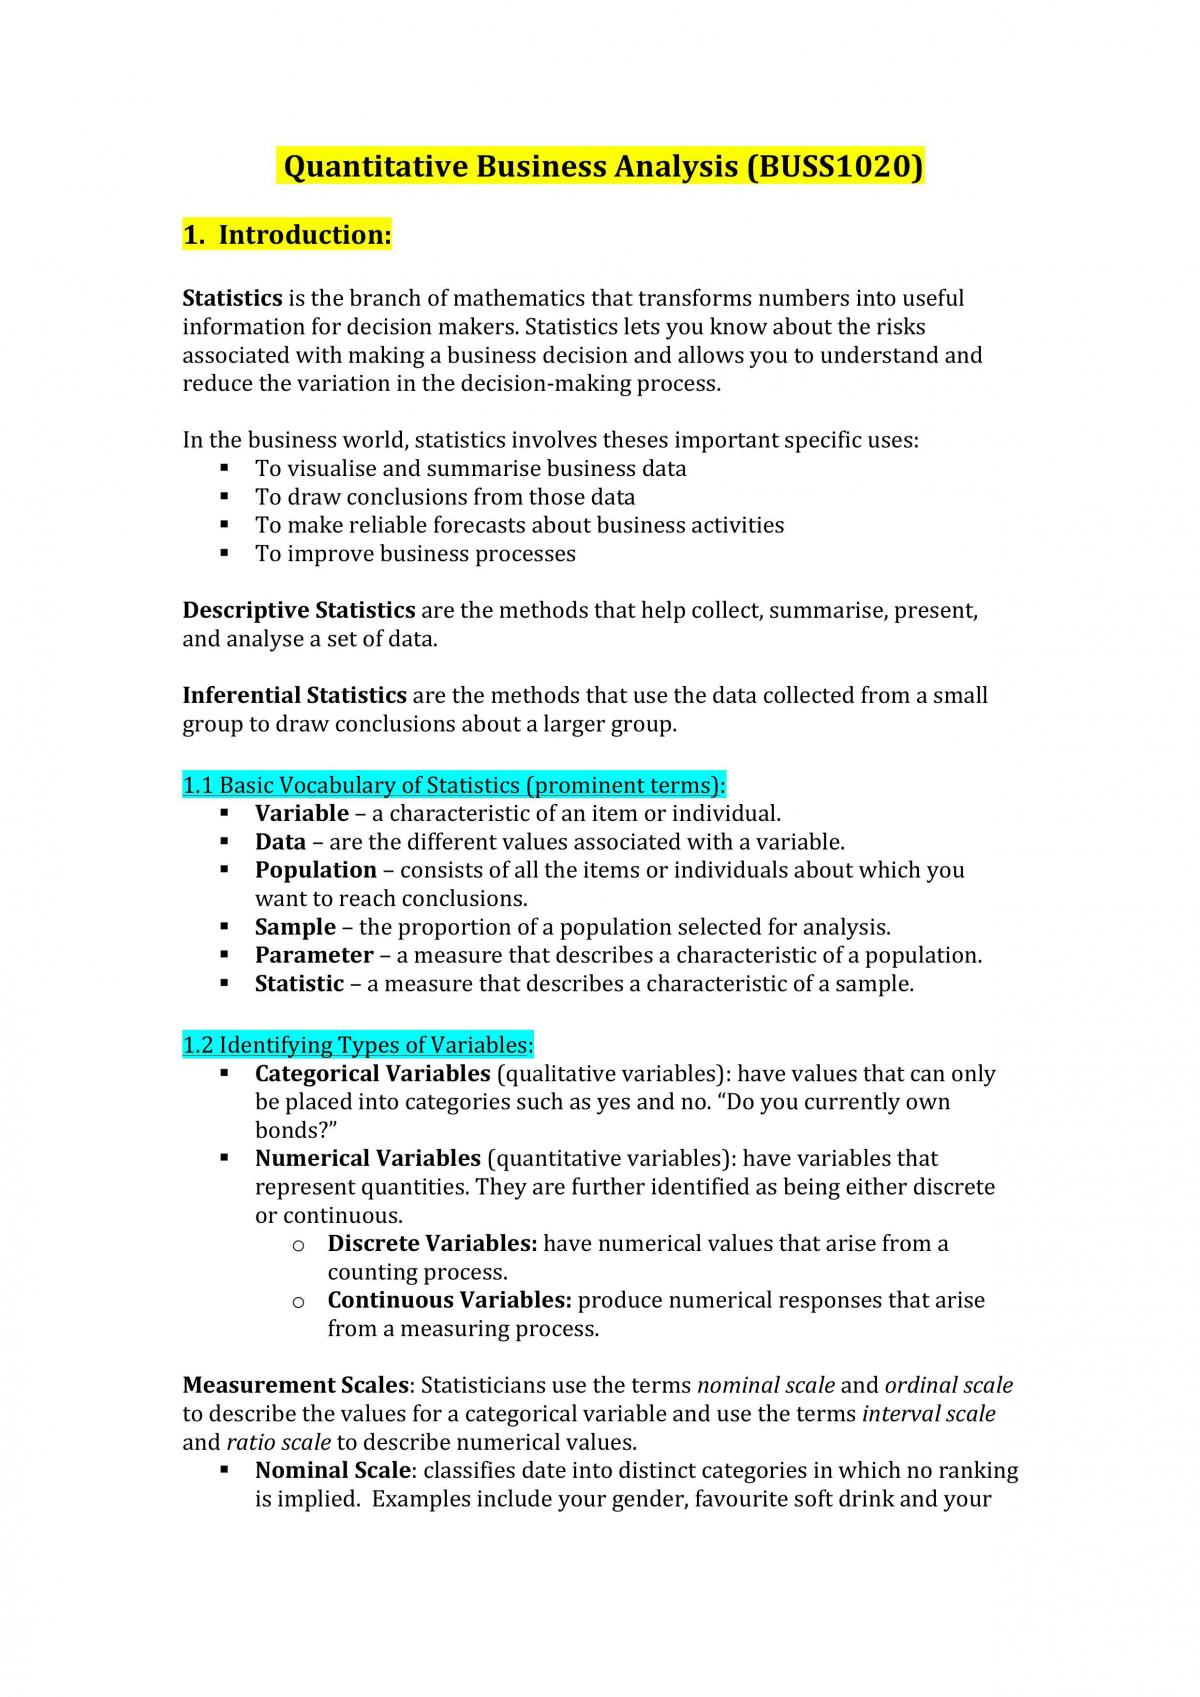 Quantitative Business Analysis Notes - Page 1